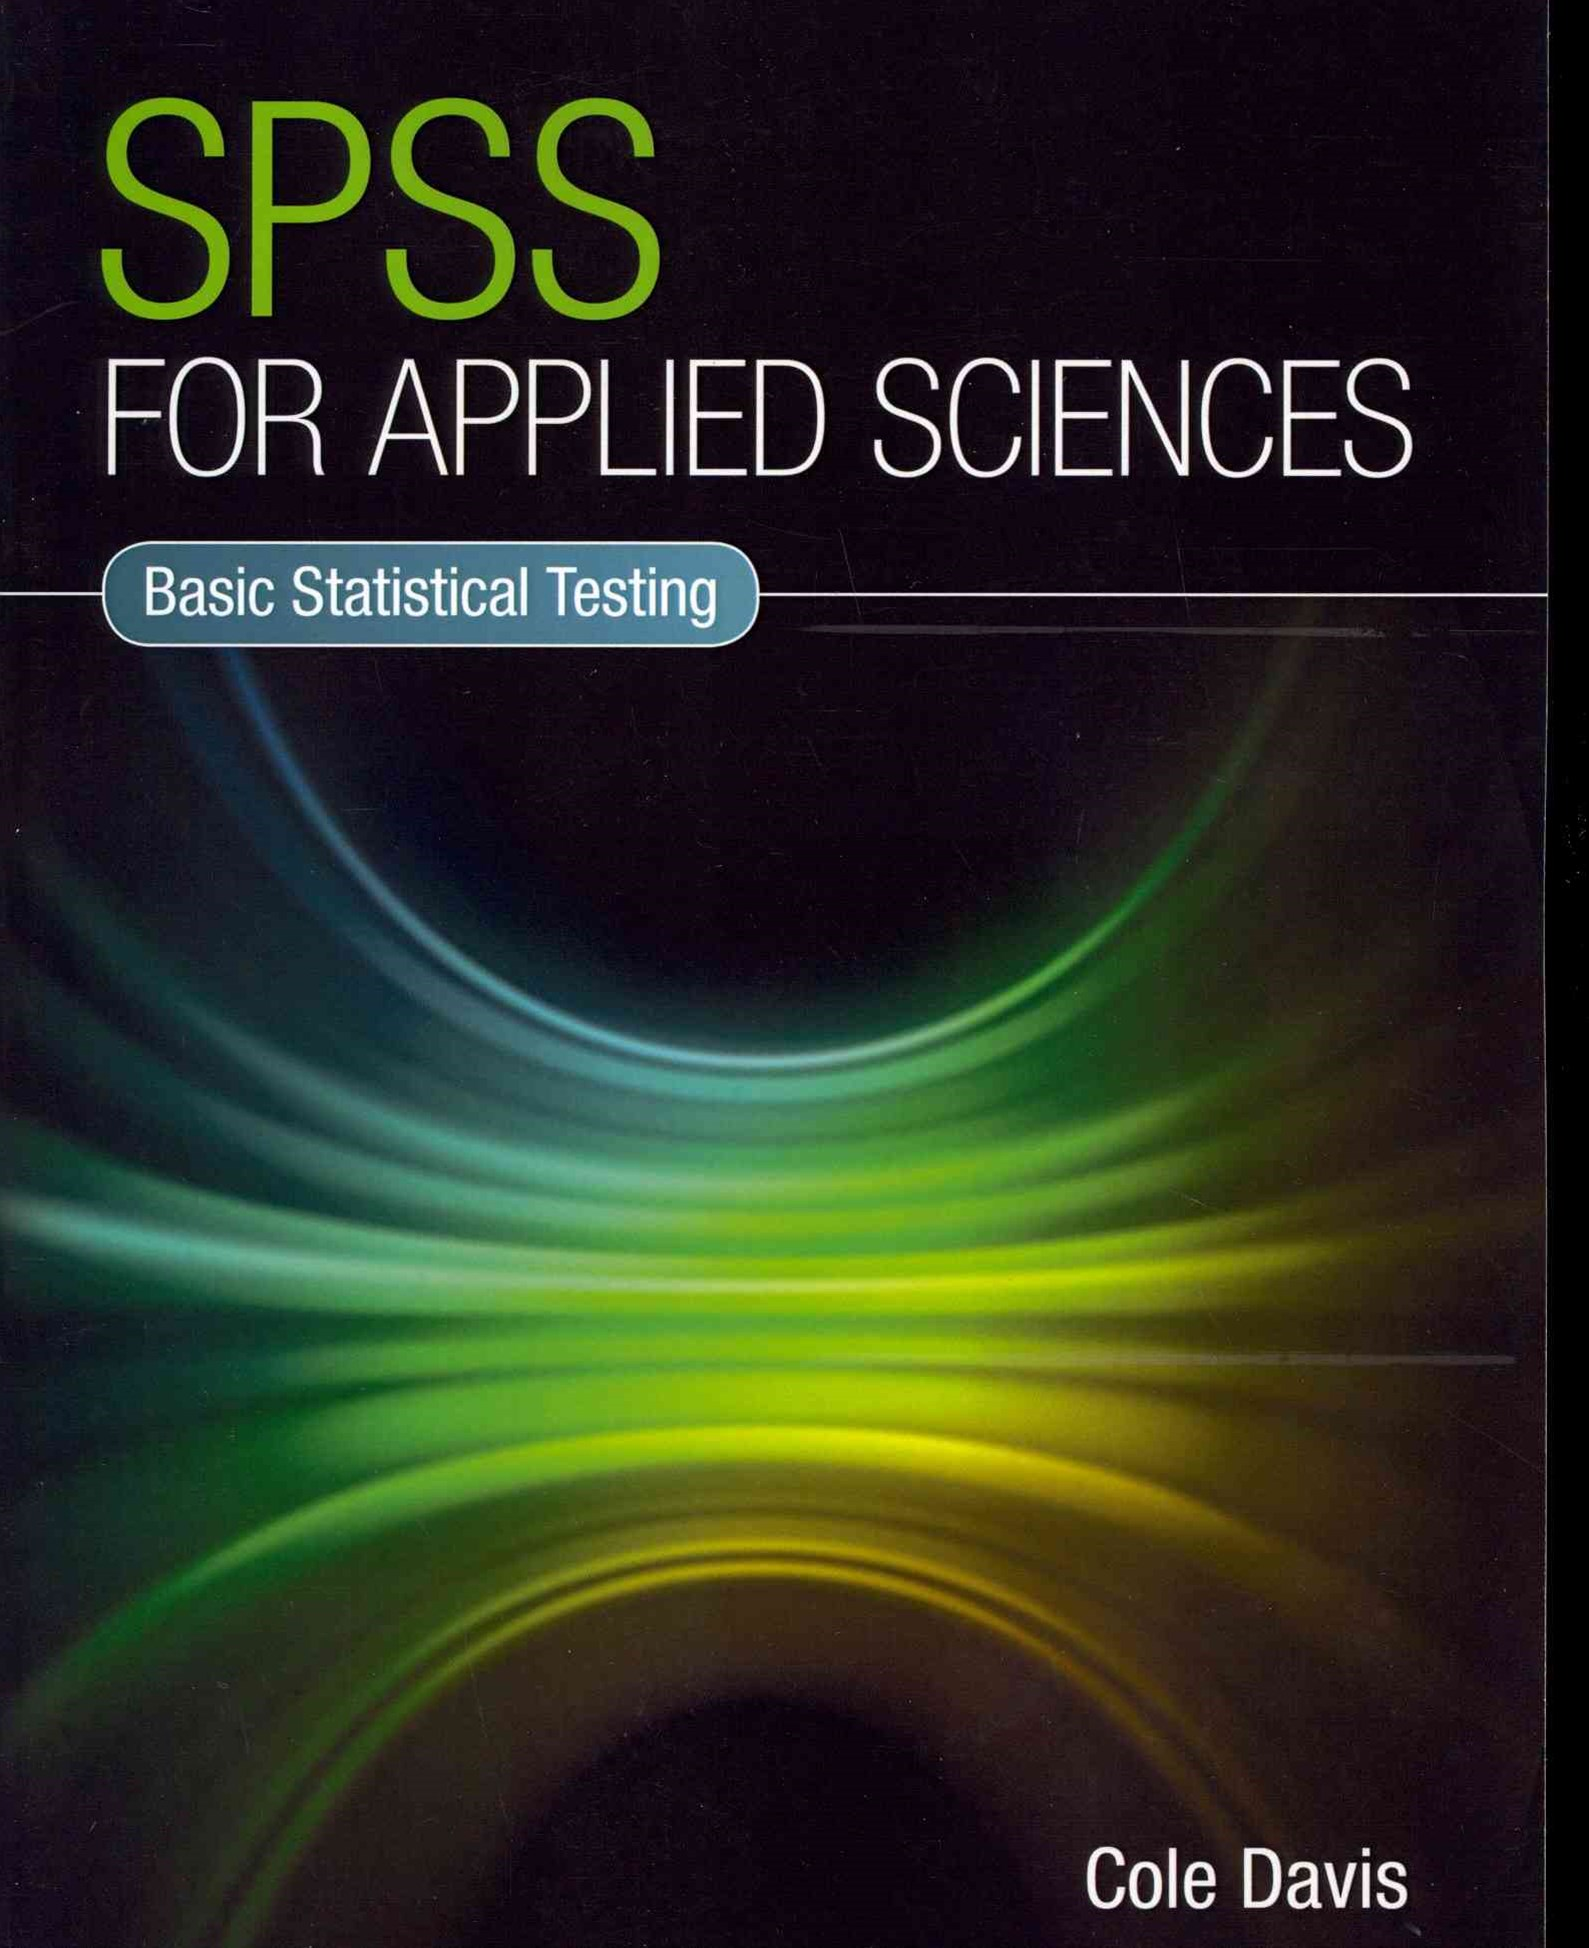 SPSS for Applied Sciences